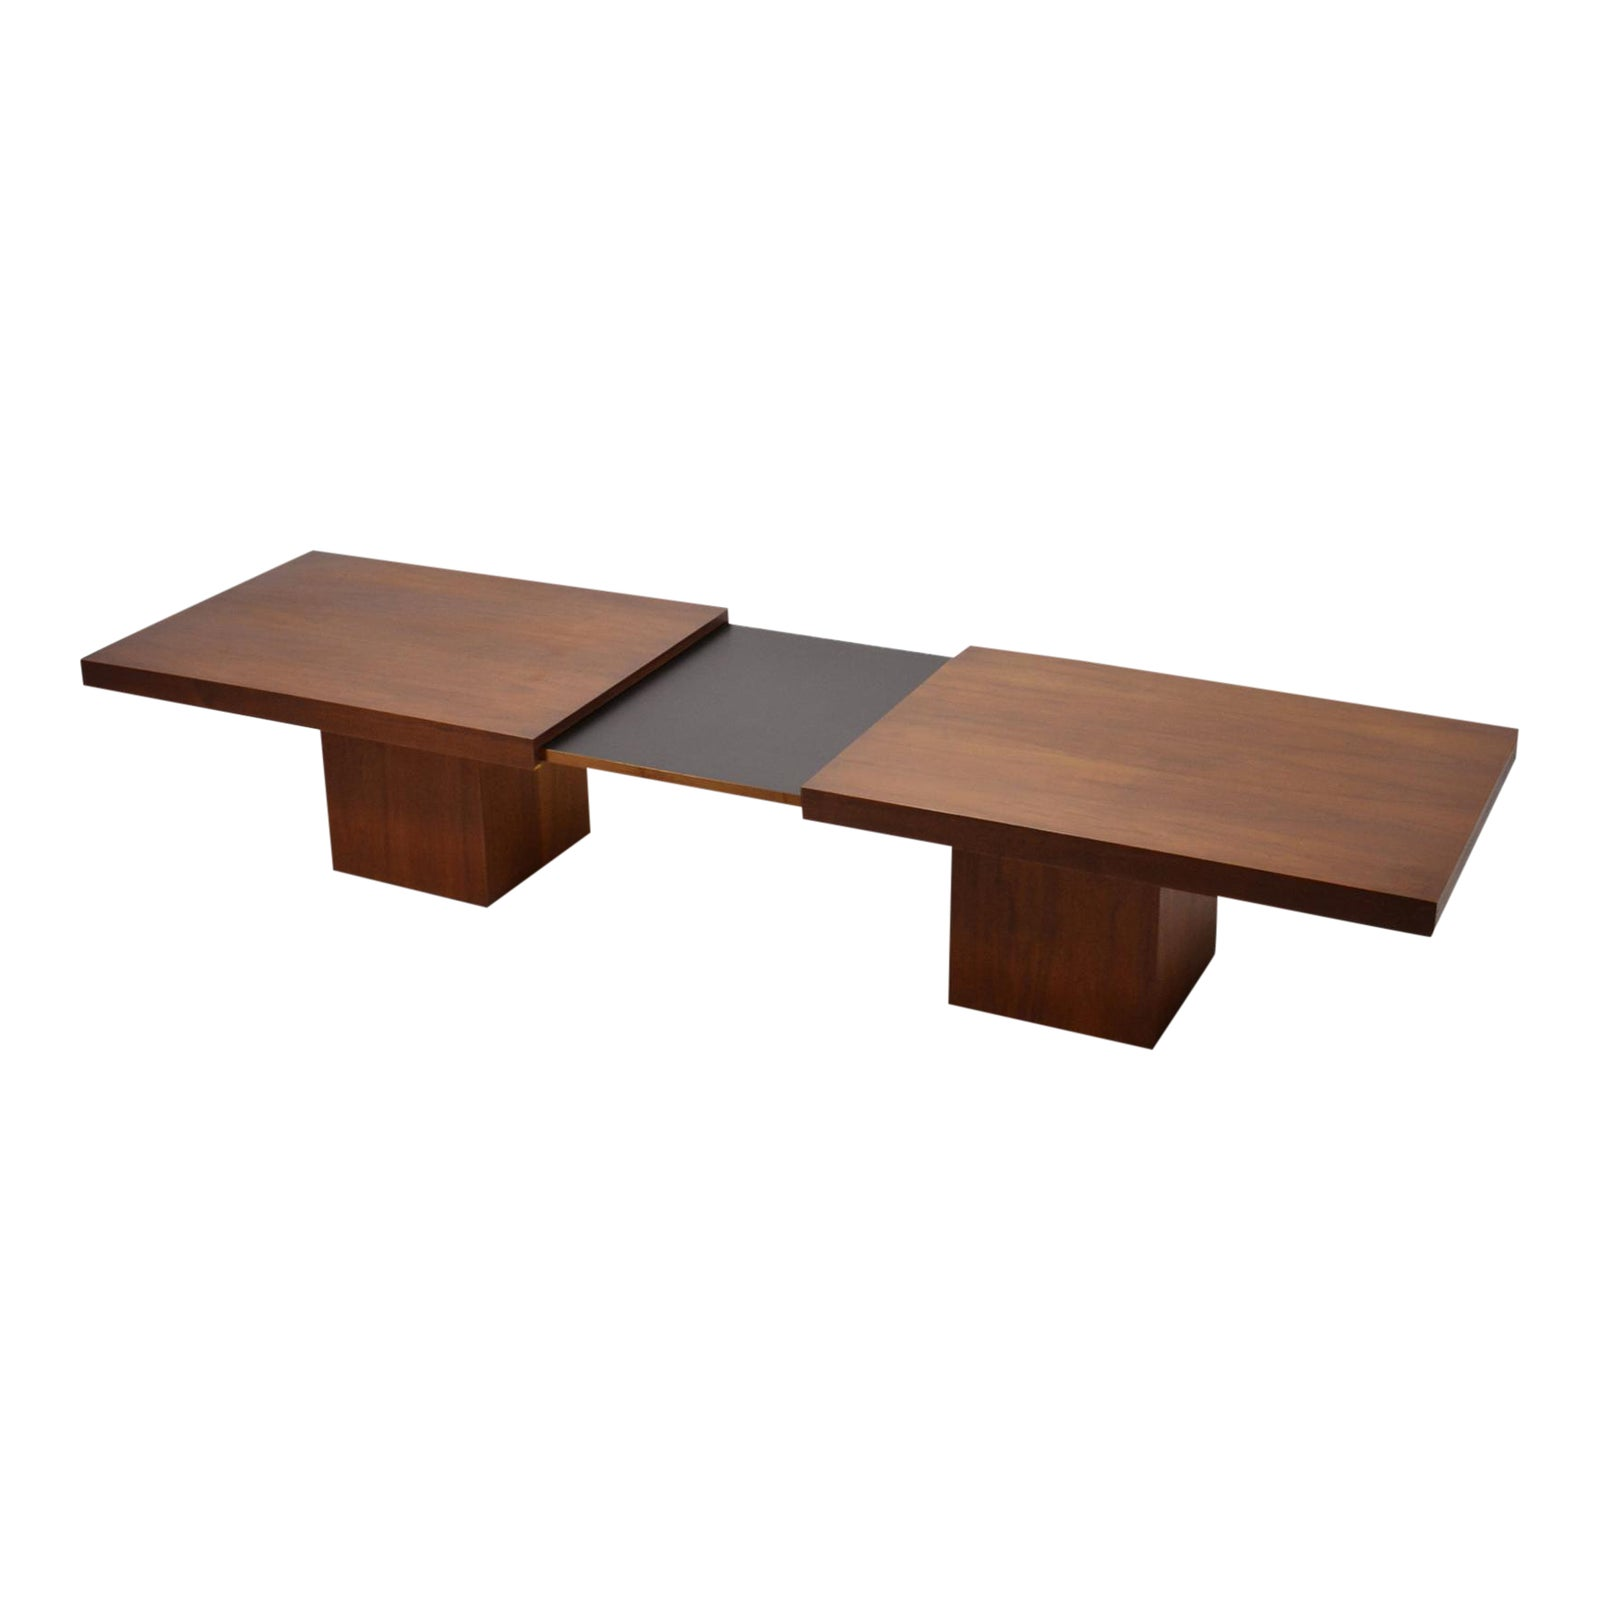 Sophisticated John Keal Expanding Coffee Table By Brown Saltman DECASO - Expanding conference table